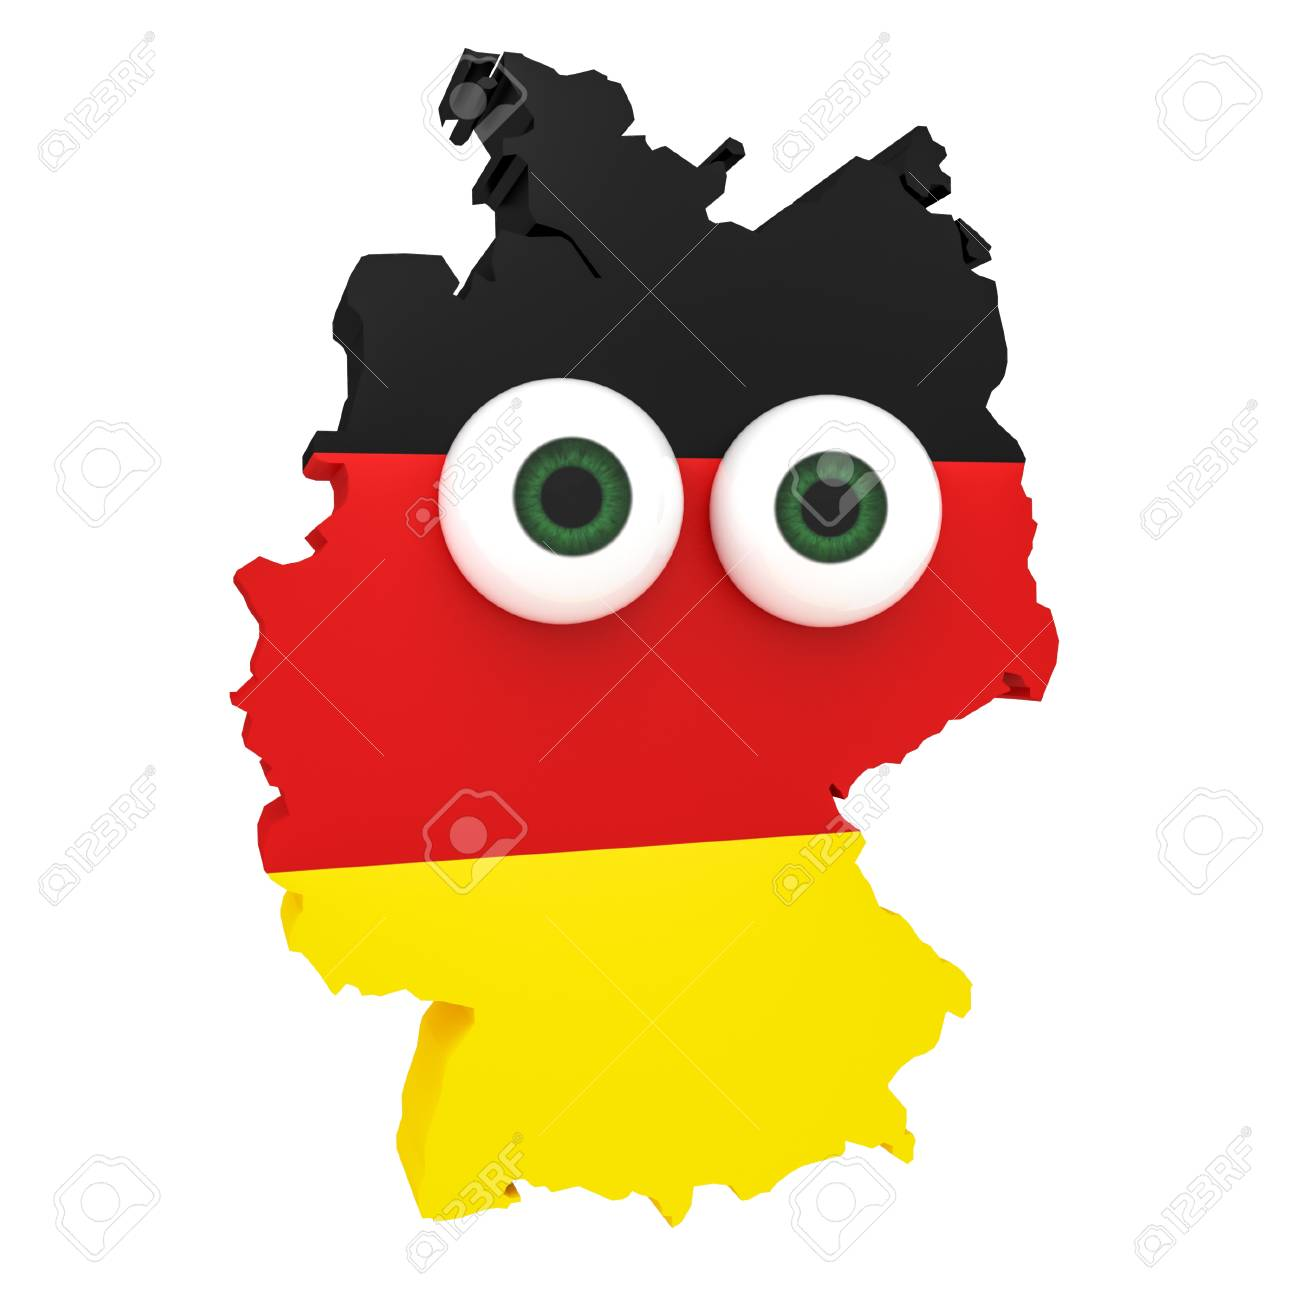 Cartoon Map Of Germany.Cartoon German Flag Map Germany With Big Eyes Isolated On White